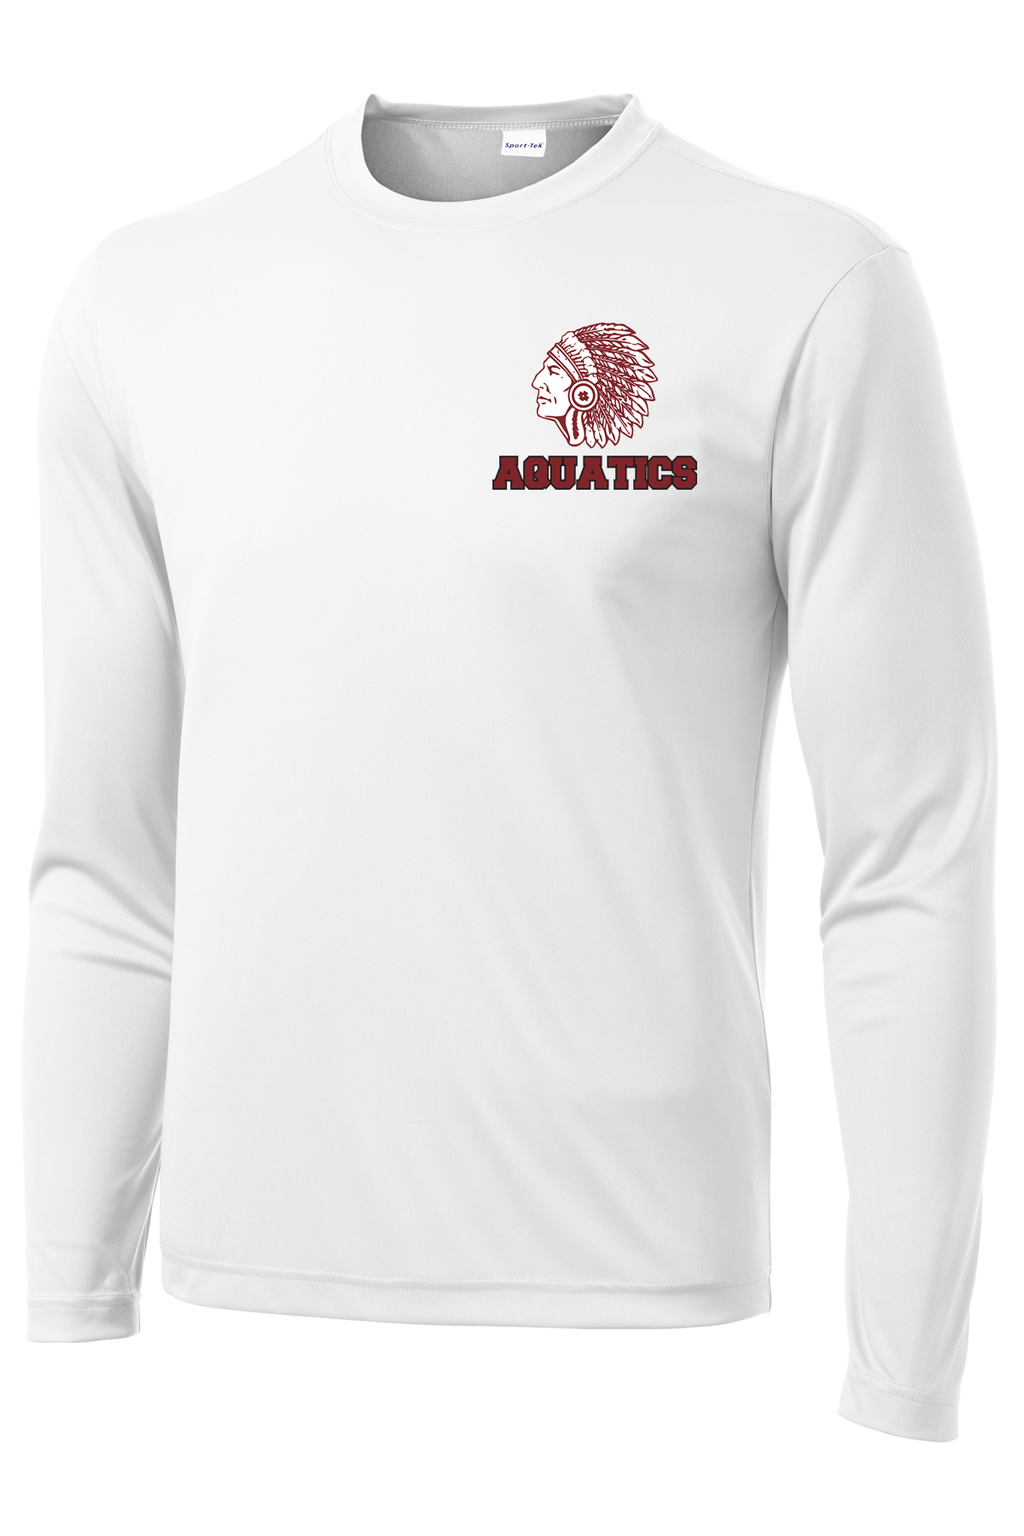 Farmington Aquatics White Long Sleeve Performance Shirt